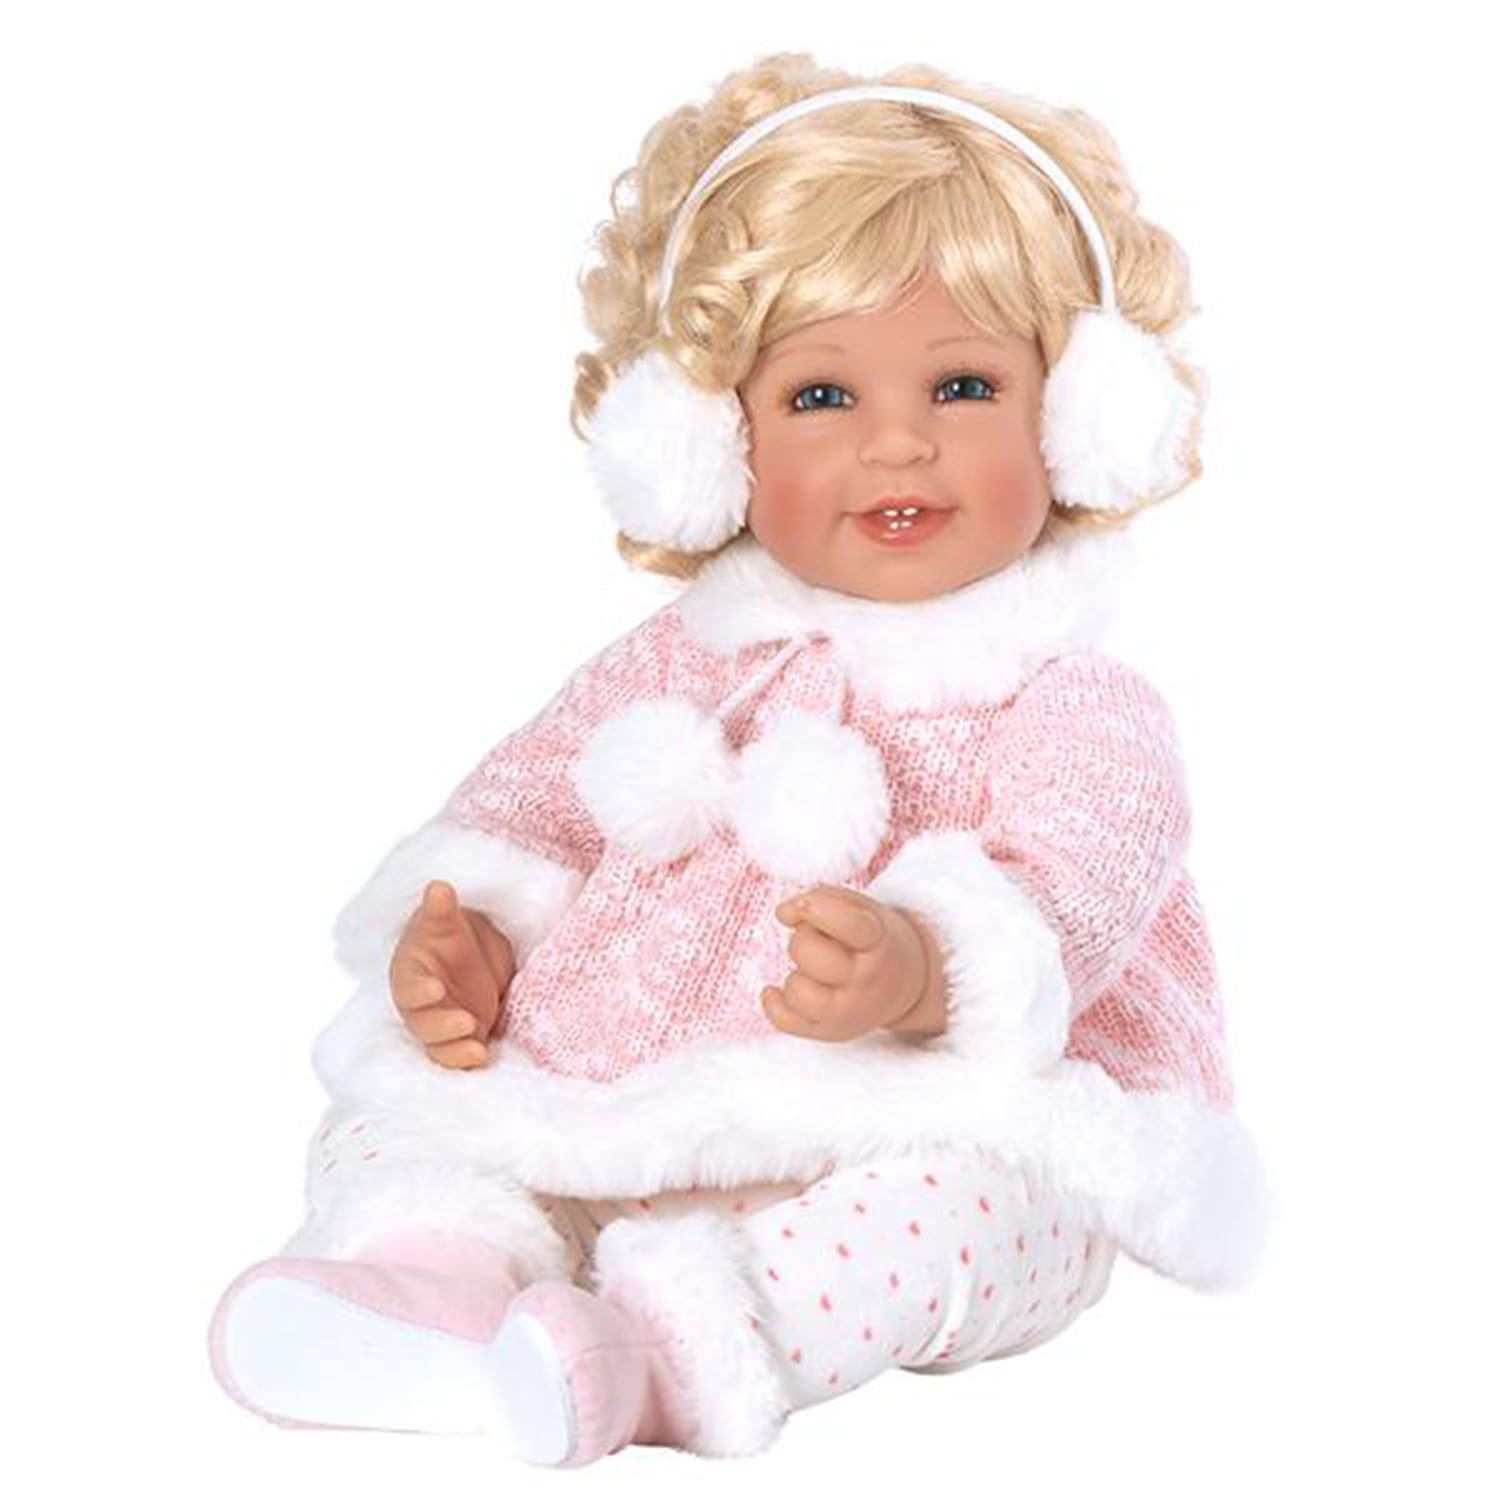 Adora ToddlerTime Doll Winter Wonder Mary Shortle